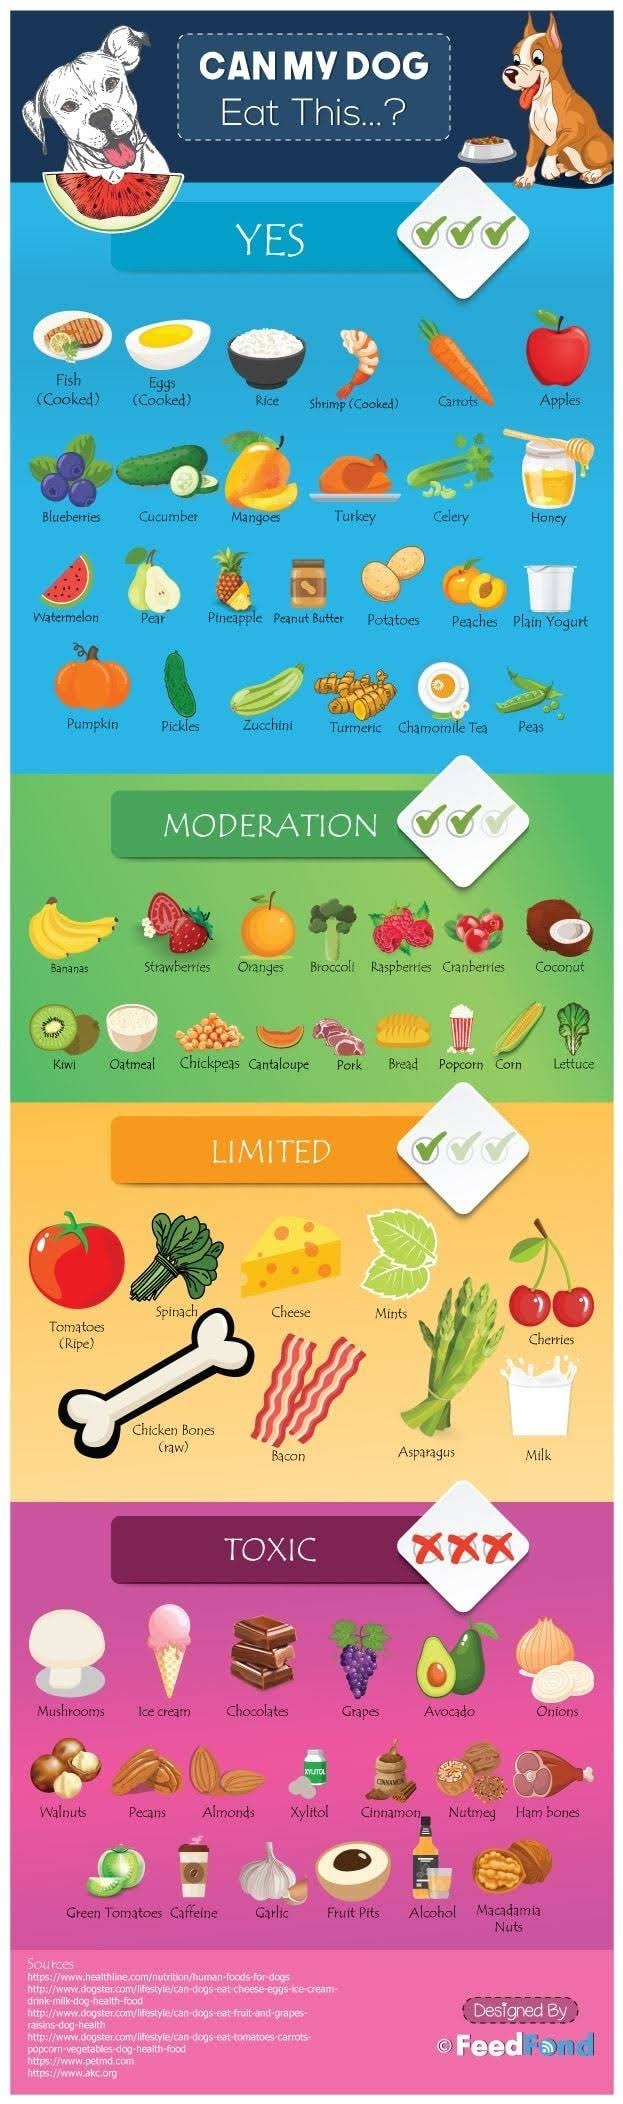 Can This Be Eaten by My Dog #infographic